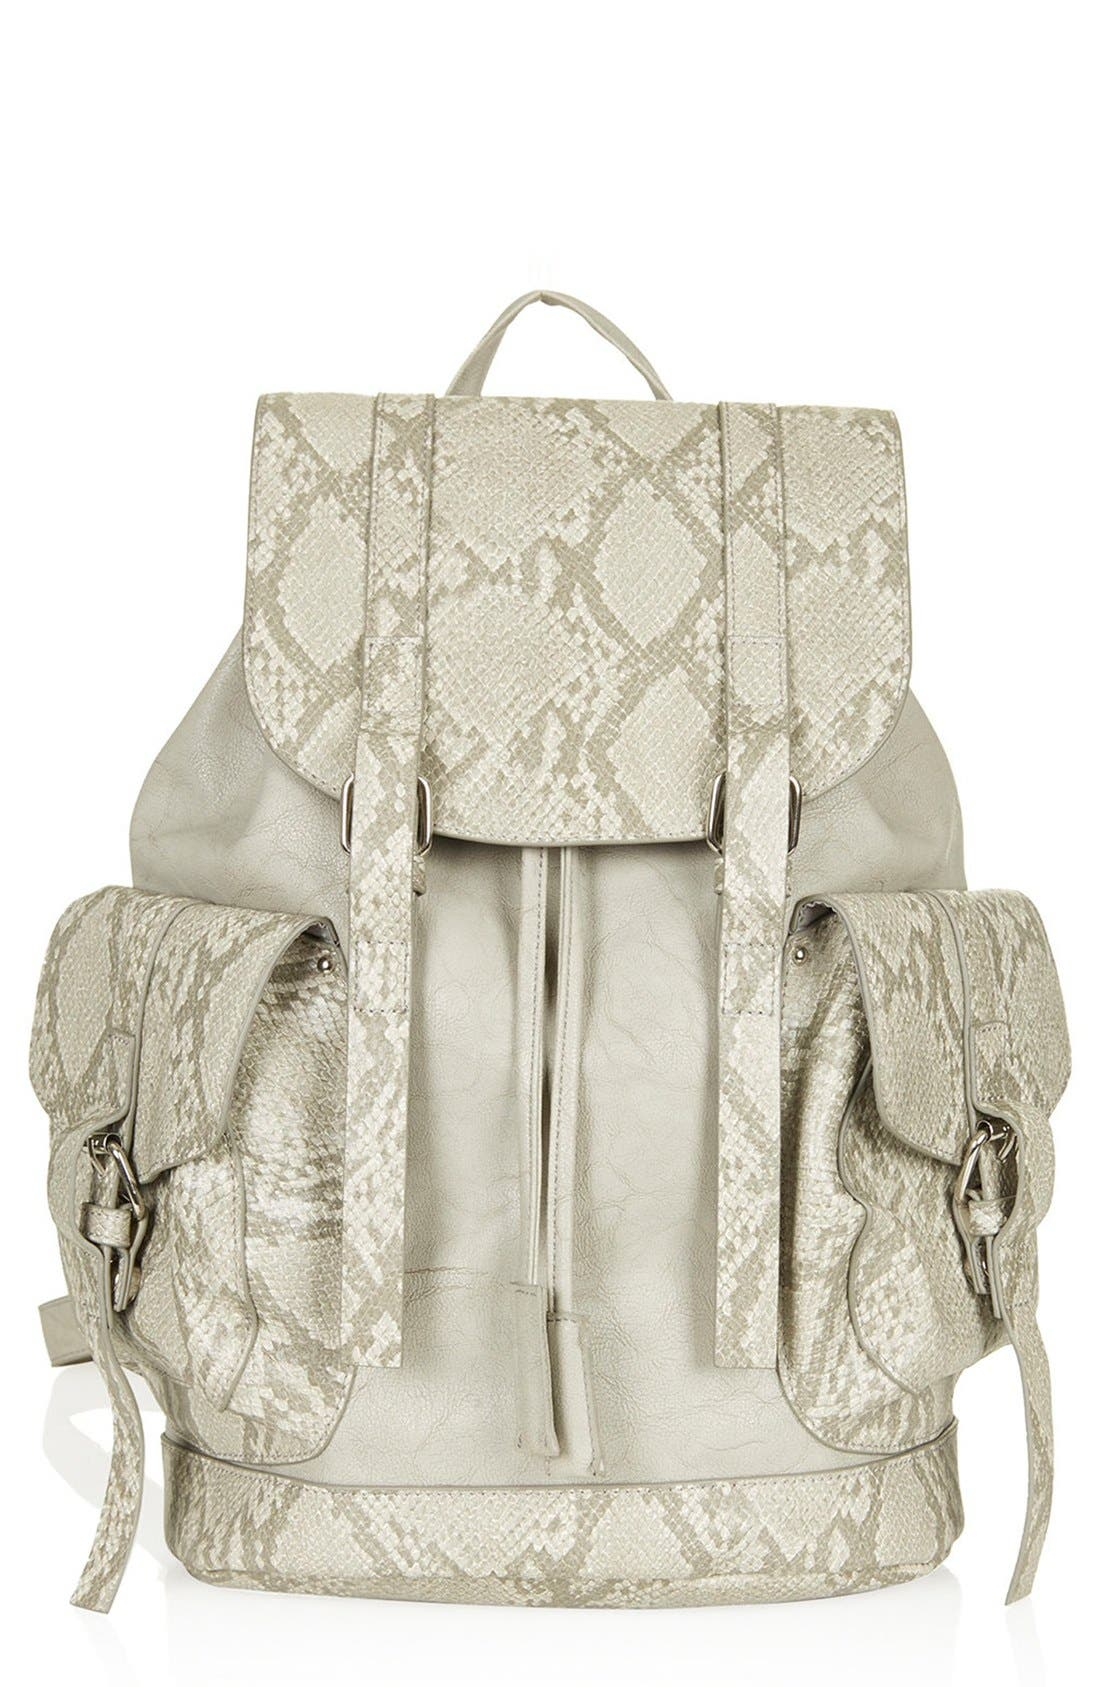 Alternate Image 1 Selected - Topshop Snakeskin Pocket Faux Leather Backpack